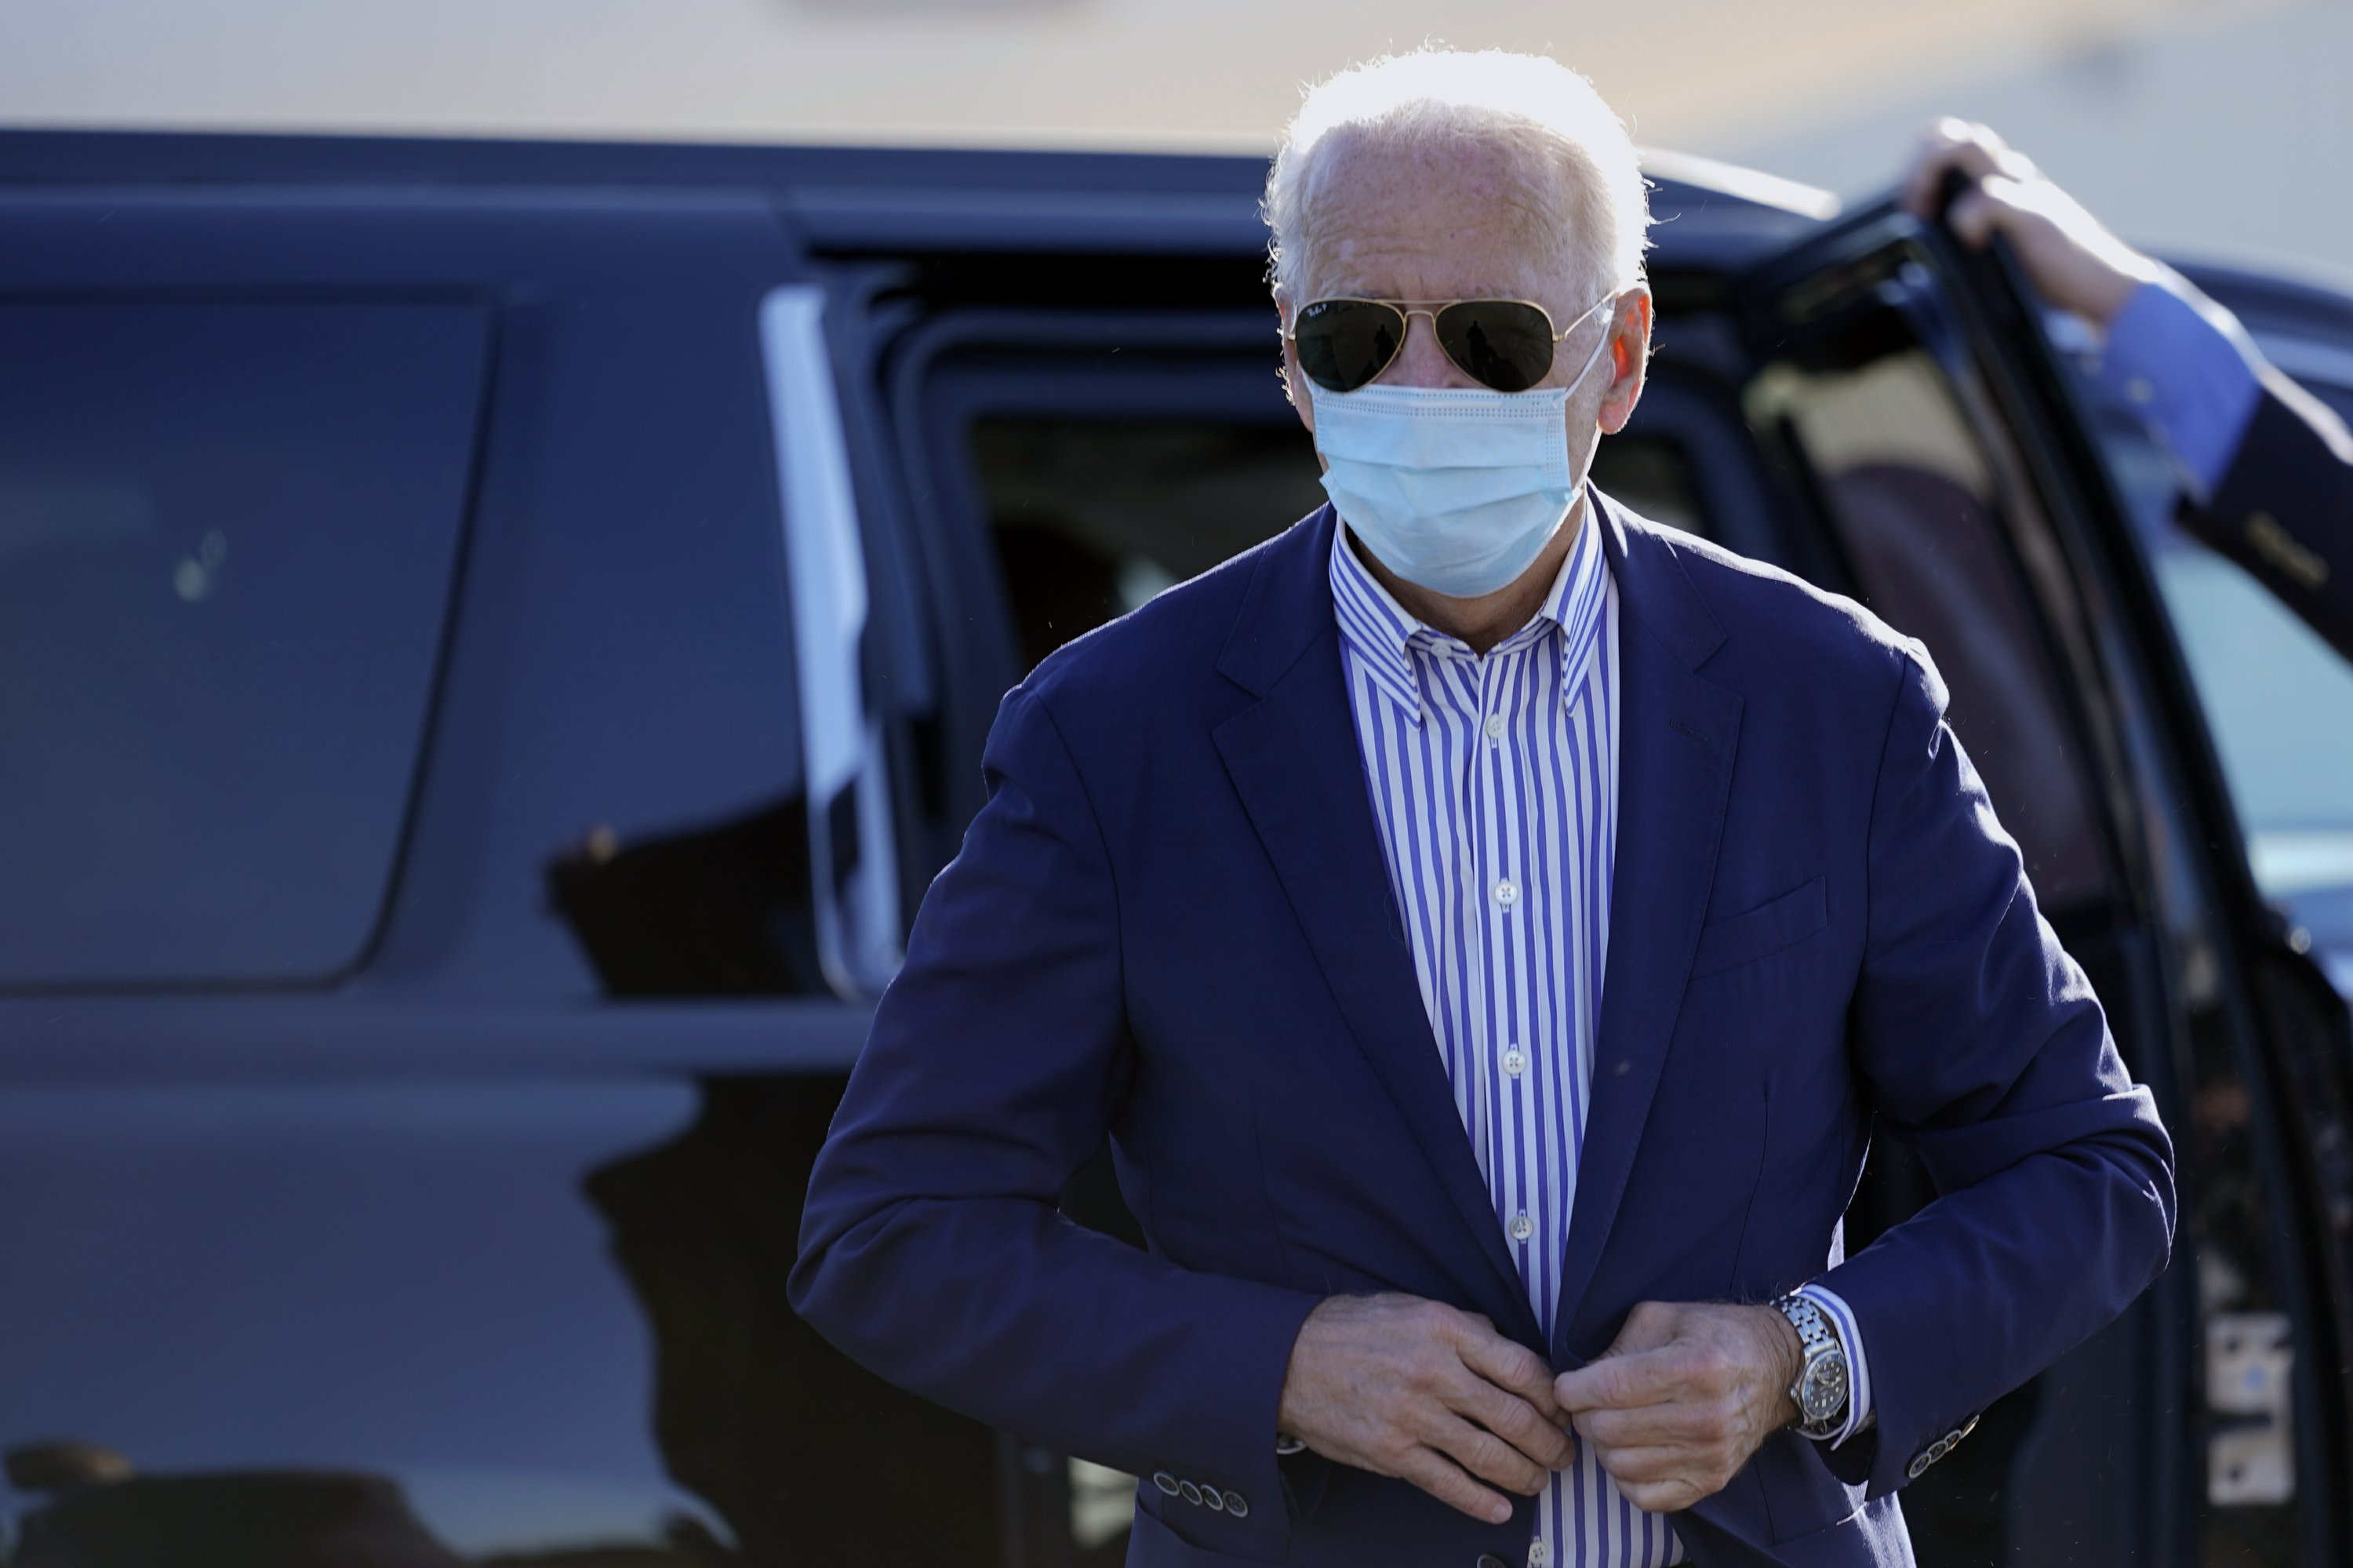 The Latest: Biden's latest coronavirus test is negative